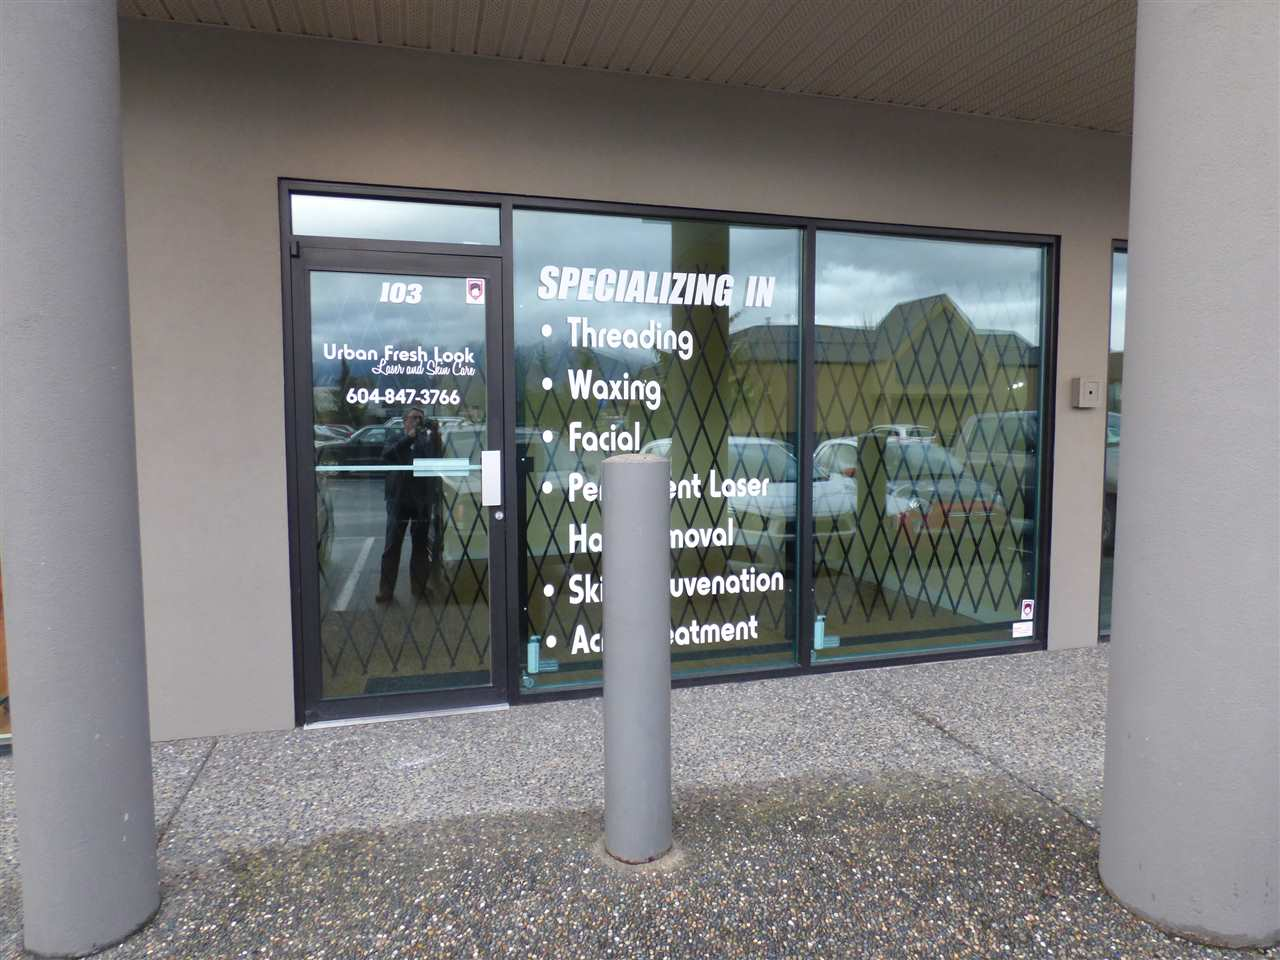 Main Photo: 103 45389 LUCKAKUCK Way in Chilliwack: Sardis West Vedder Rd Commercial for lease (Sardis)  : MLS® # C8004873